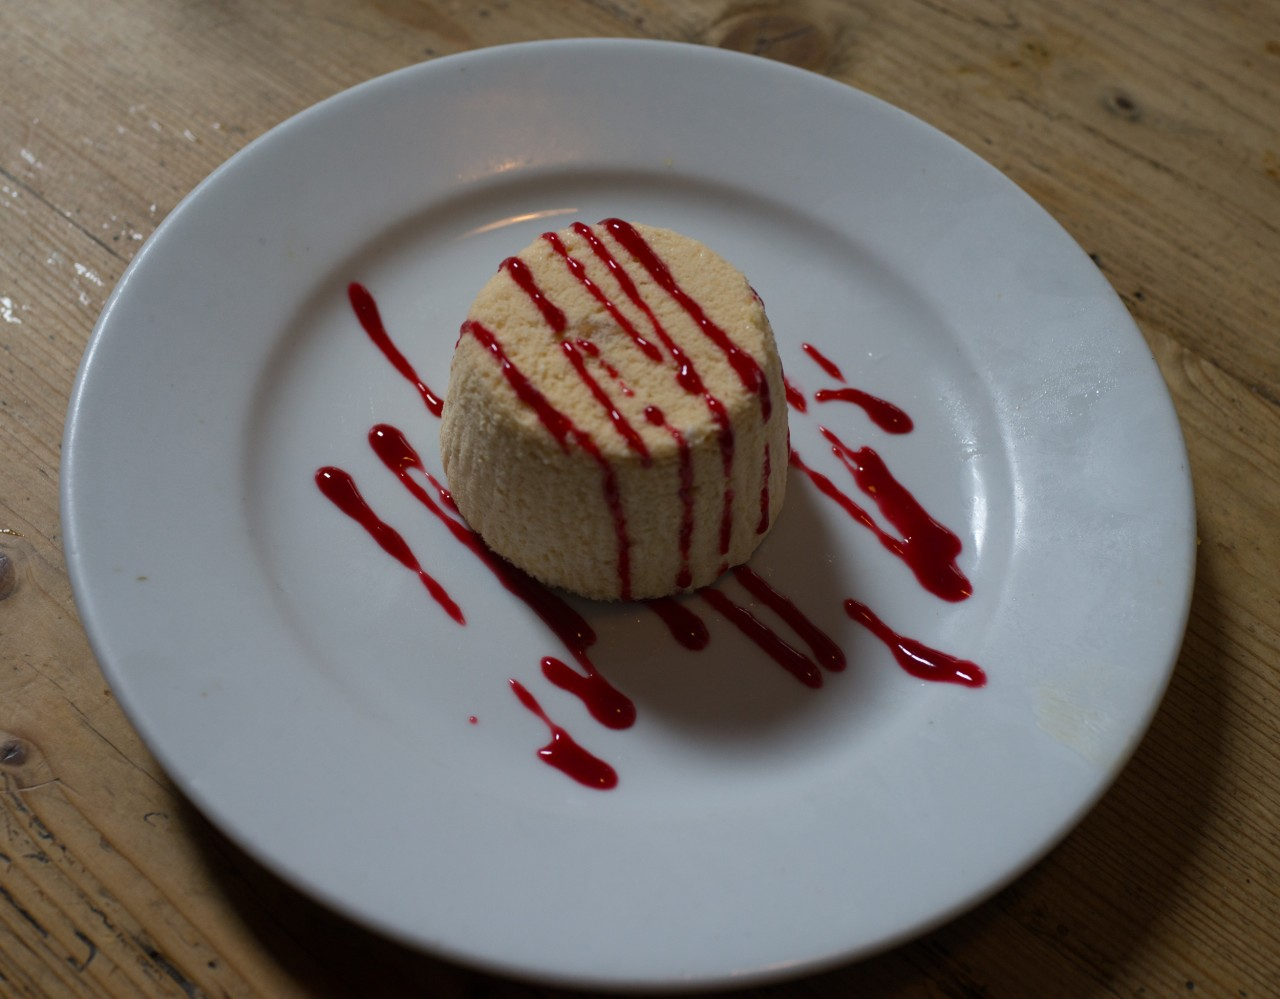 Peanut butter parfait with raspberry coulis